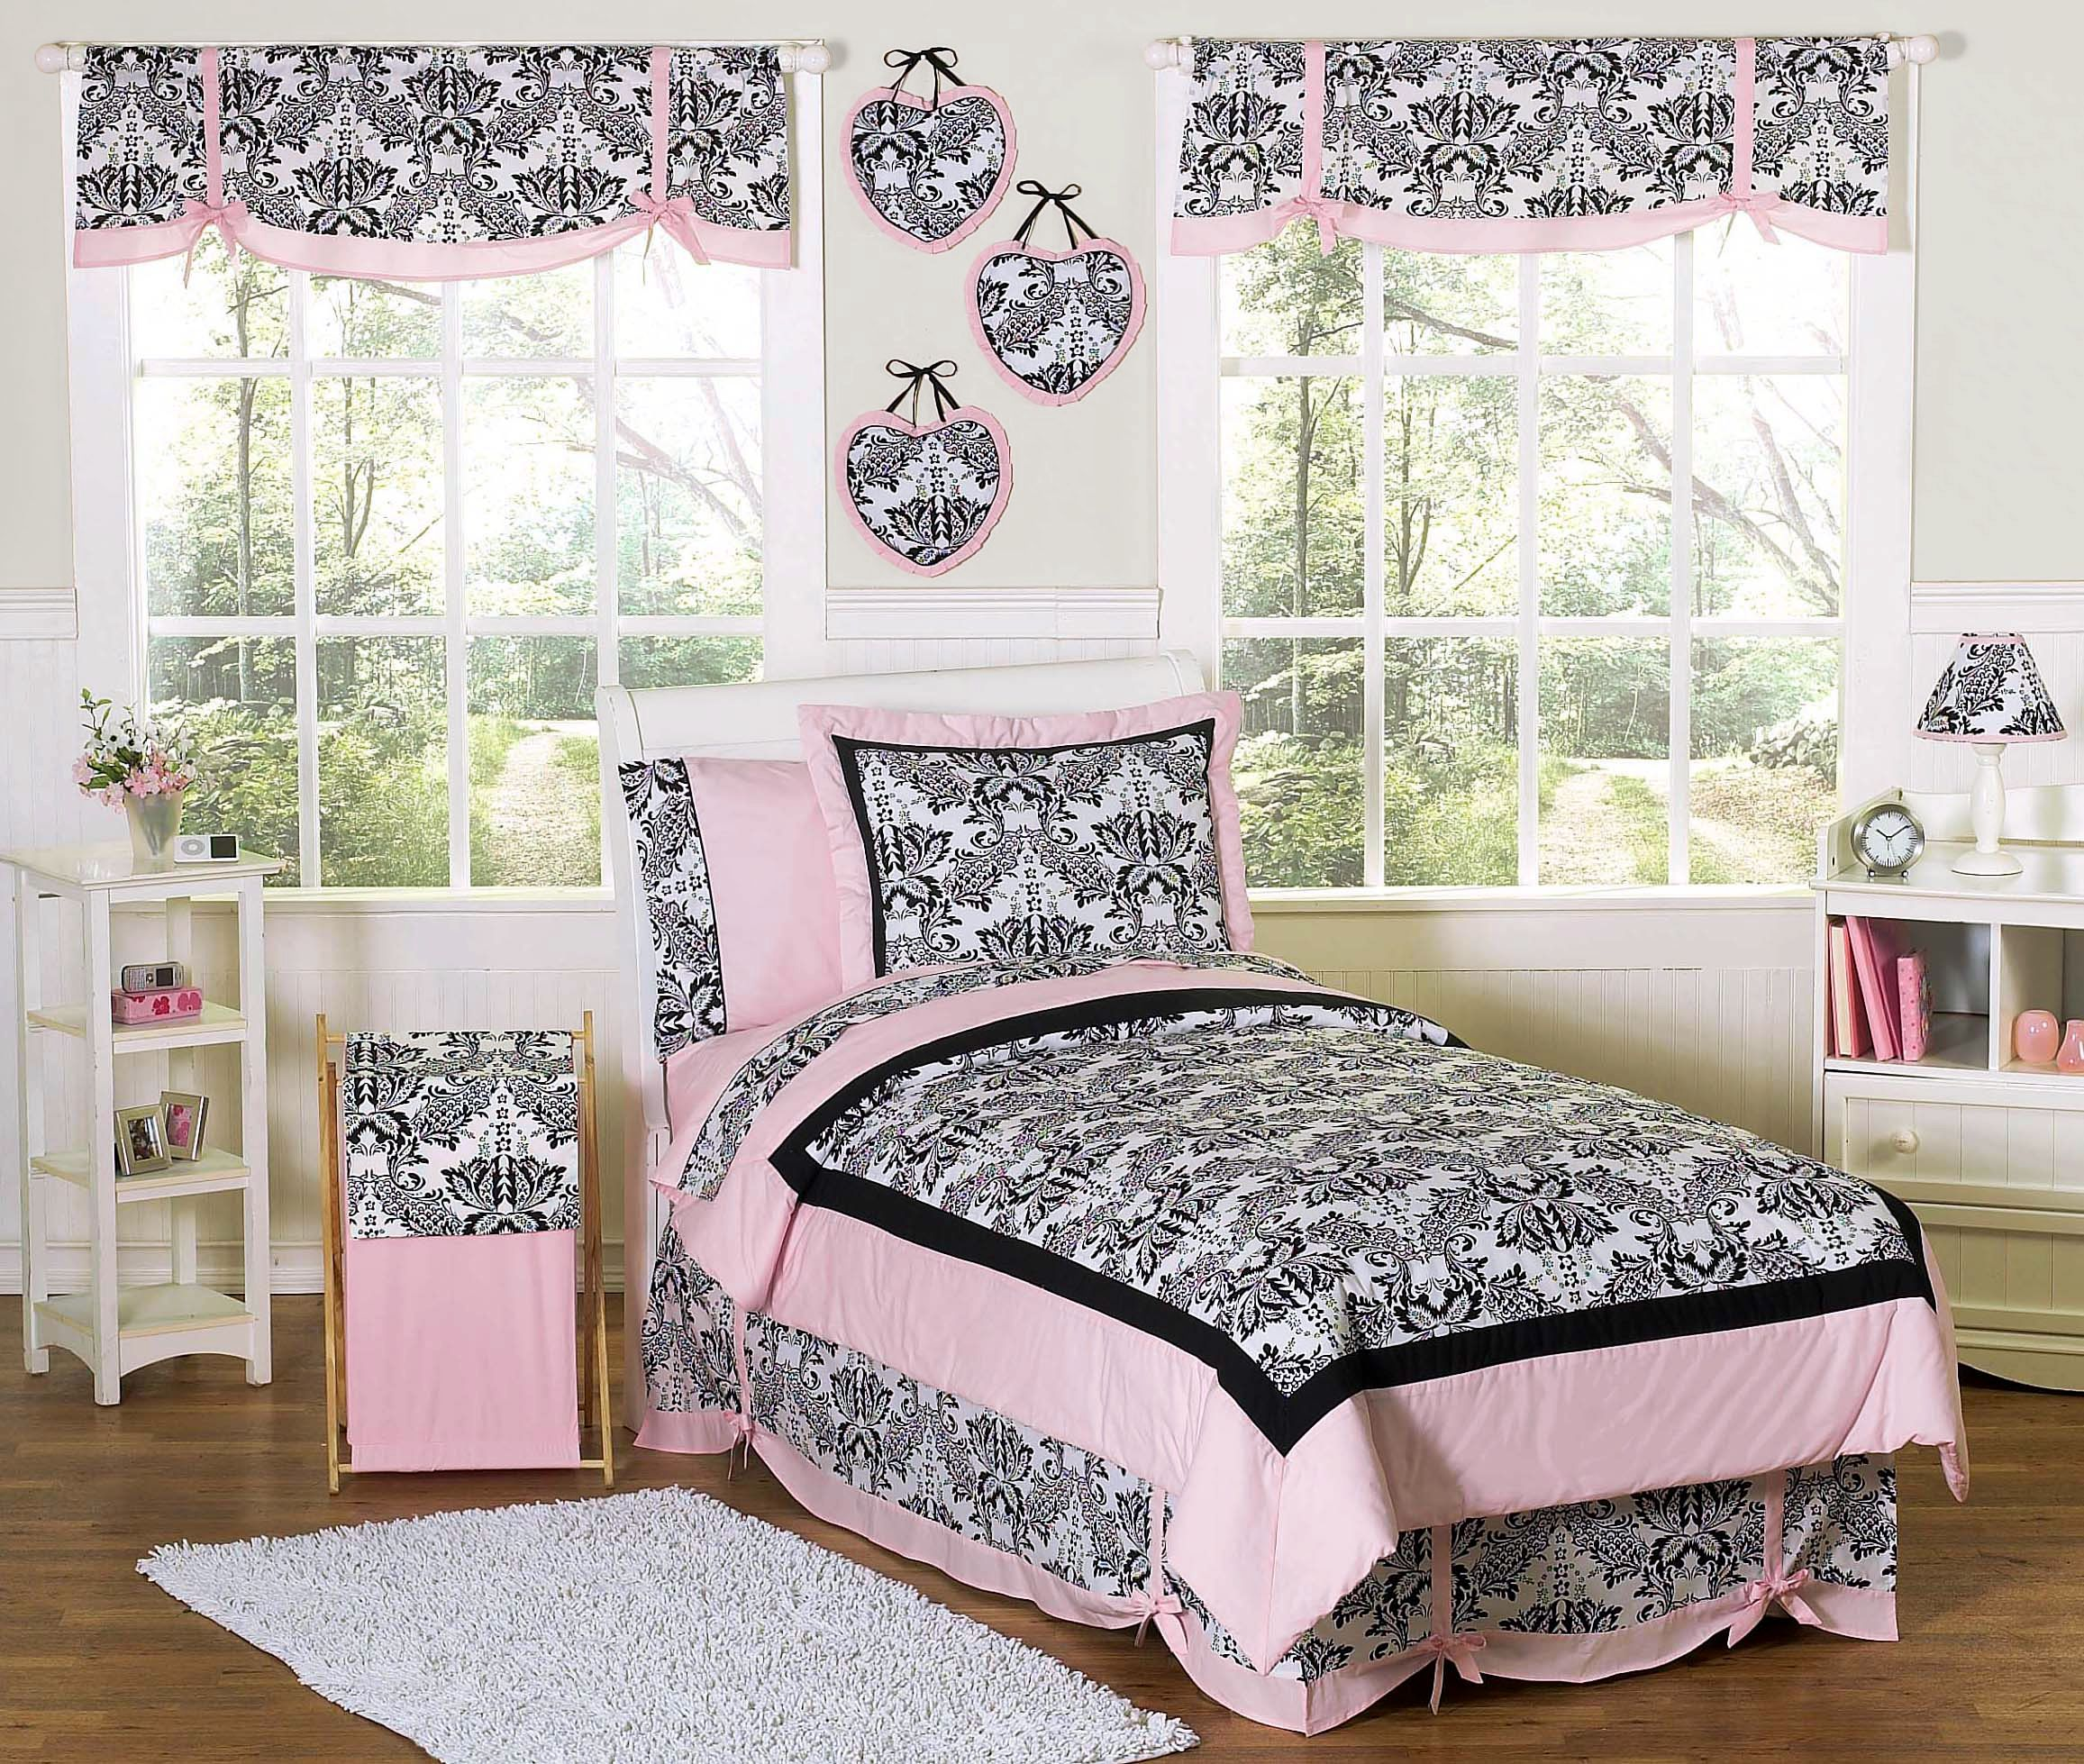 Pink black french style bedding twin full queen comforter sets for girls sophia teen beddinggirls bedding setsdamask